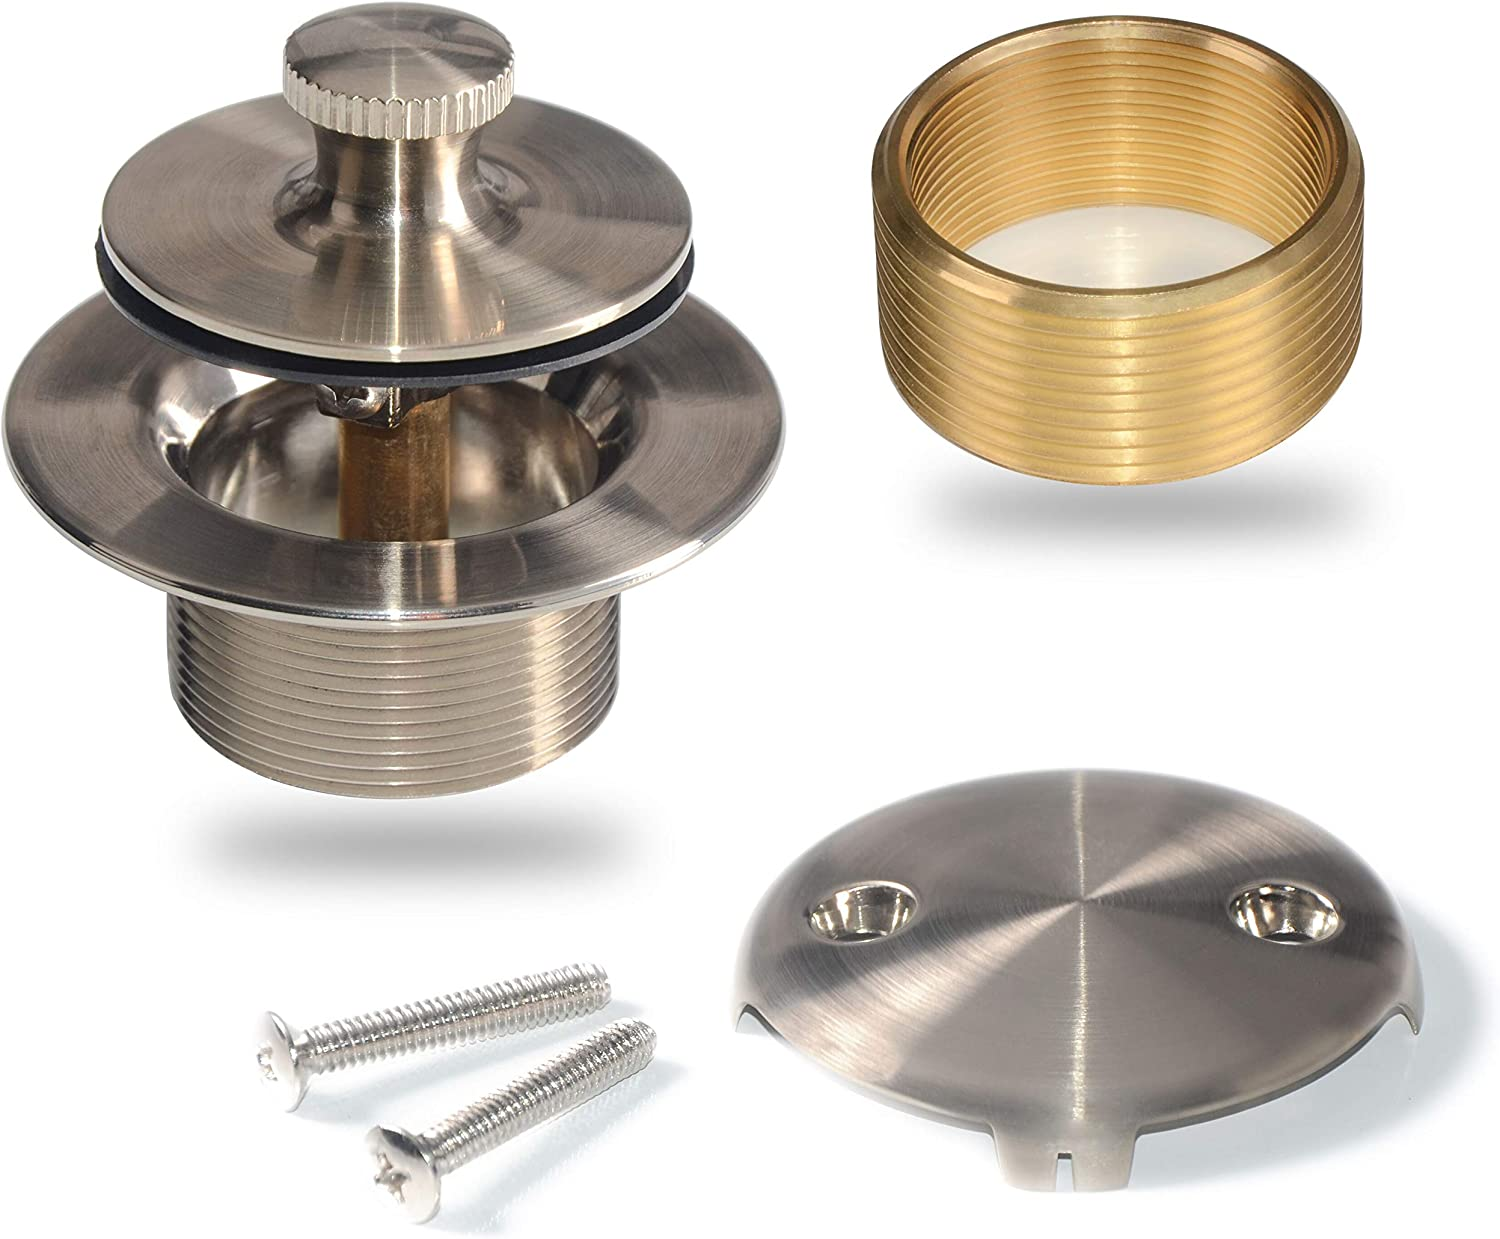 Bathtub Drain Conversion Kit Assembly, Lift and Turn Tub Drain Kit, Brass Construction Easy Installation (Brushed Nickel)